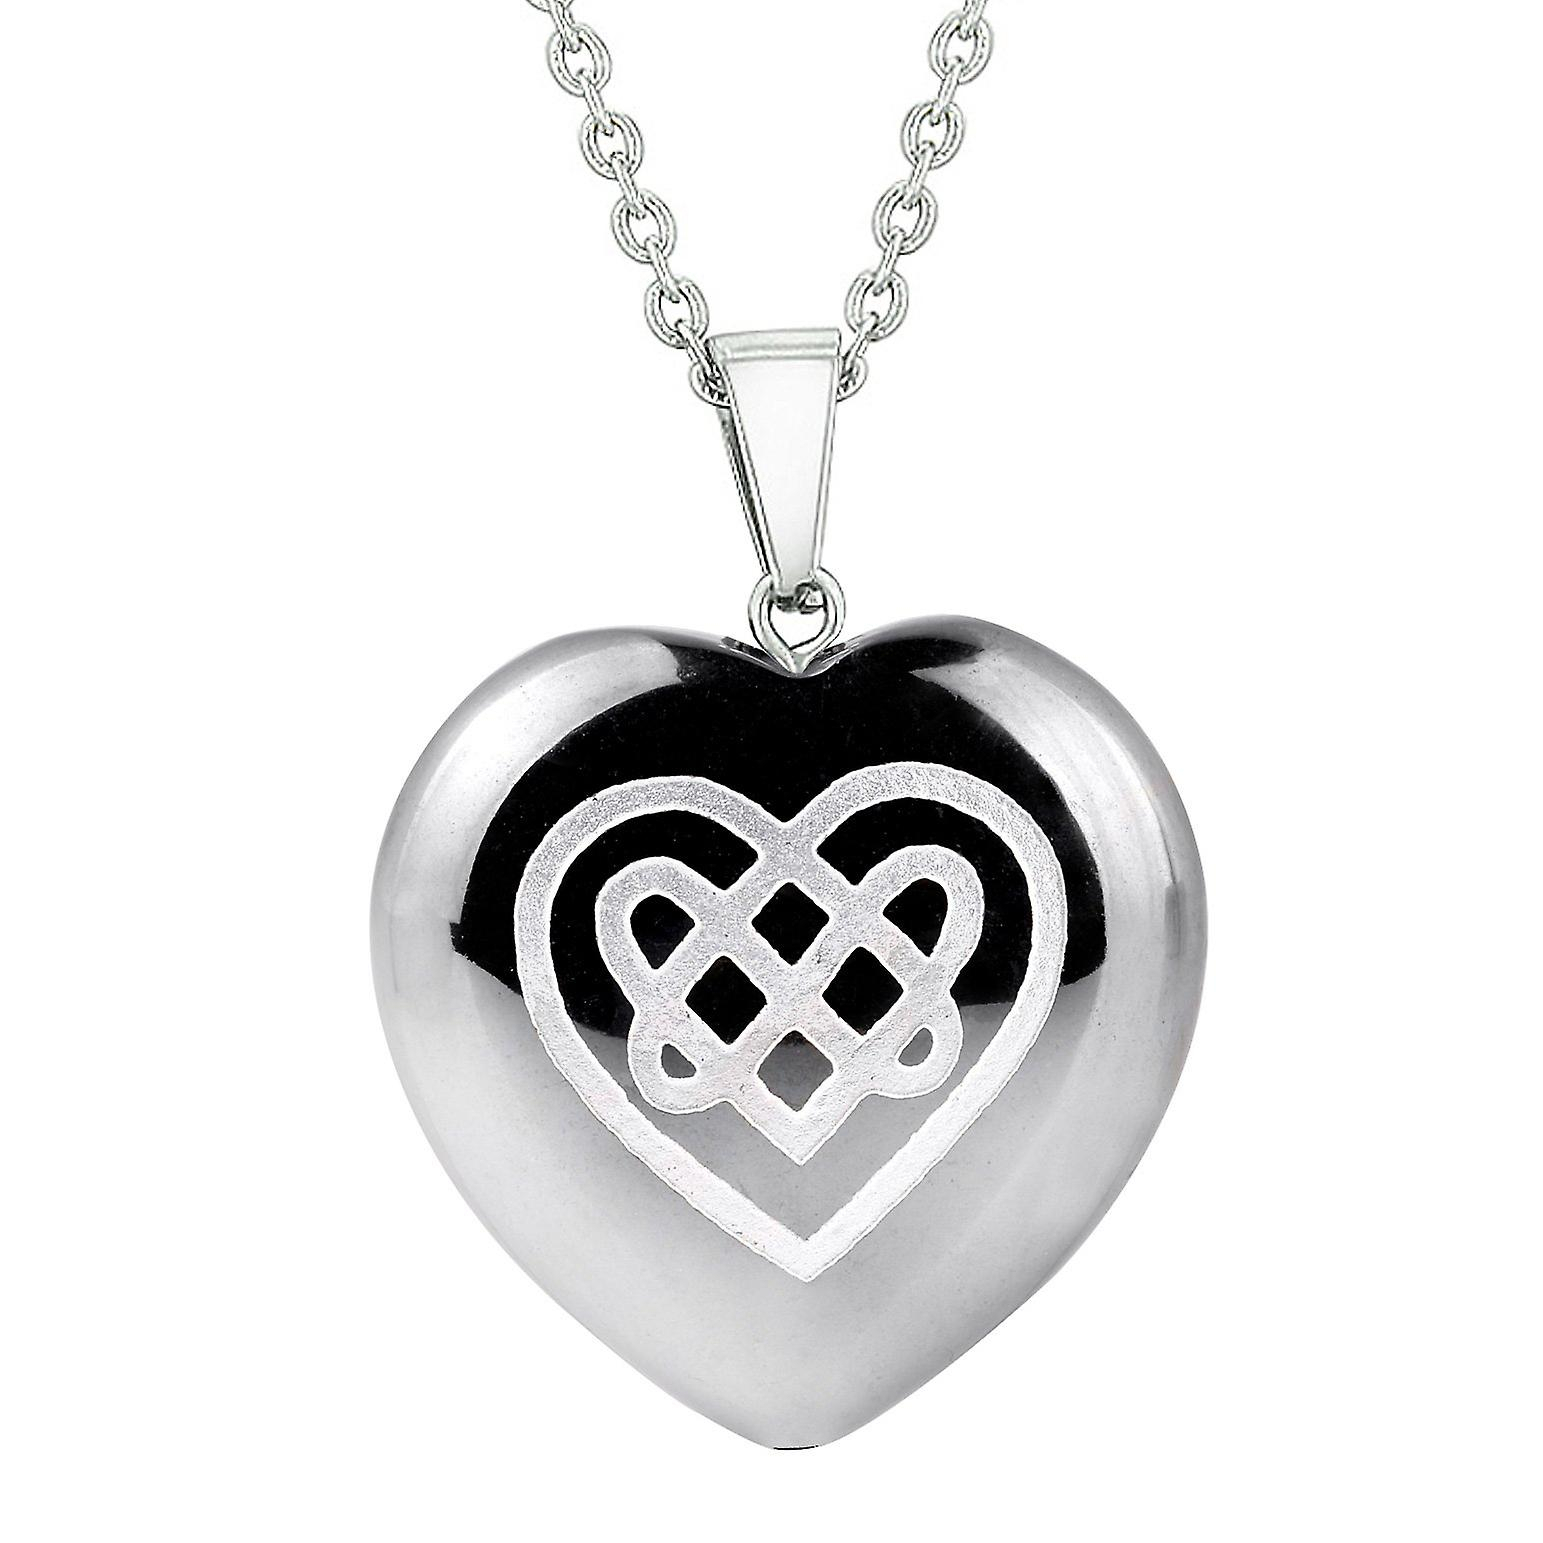 Amulet Celtic Shiled Knot Heart Powers Protection Energy Hematite Puffy  Heart Pendant Necklace Regarding Most Recent Knotted Heart Pendant Necklaces (View 2 of 25)